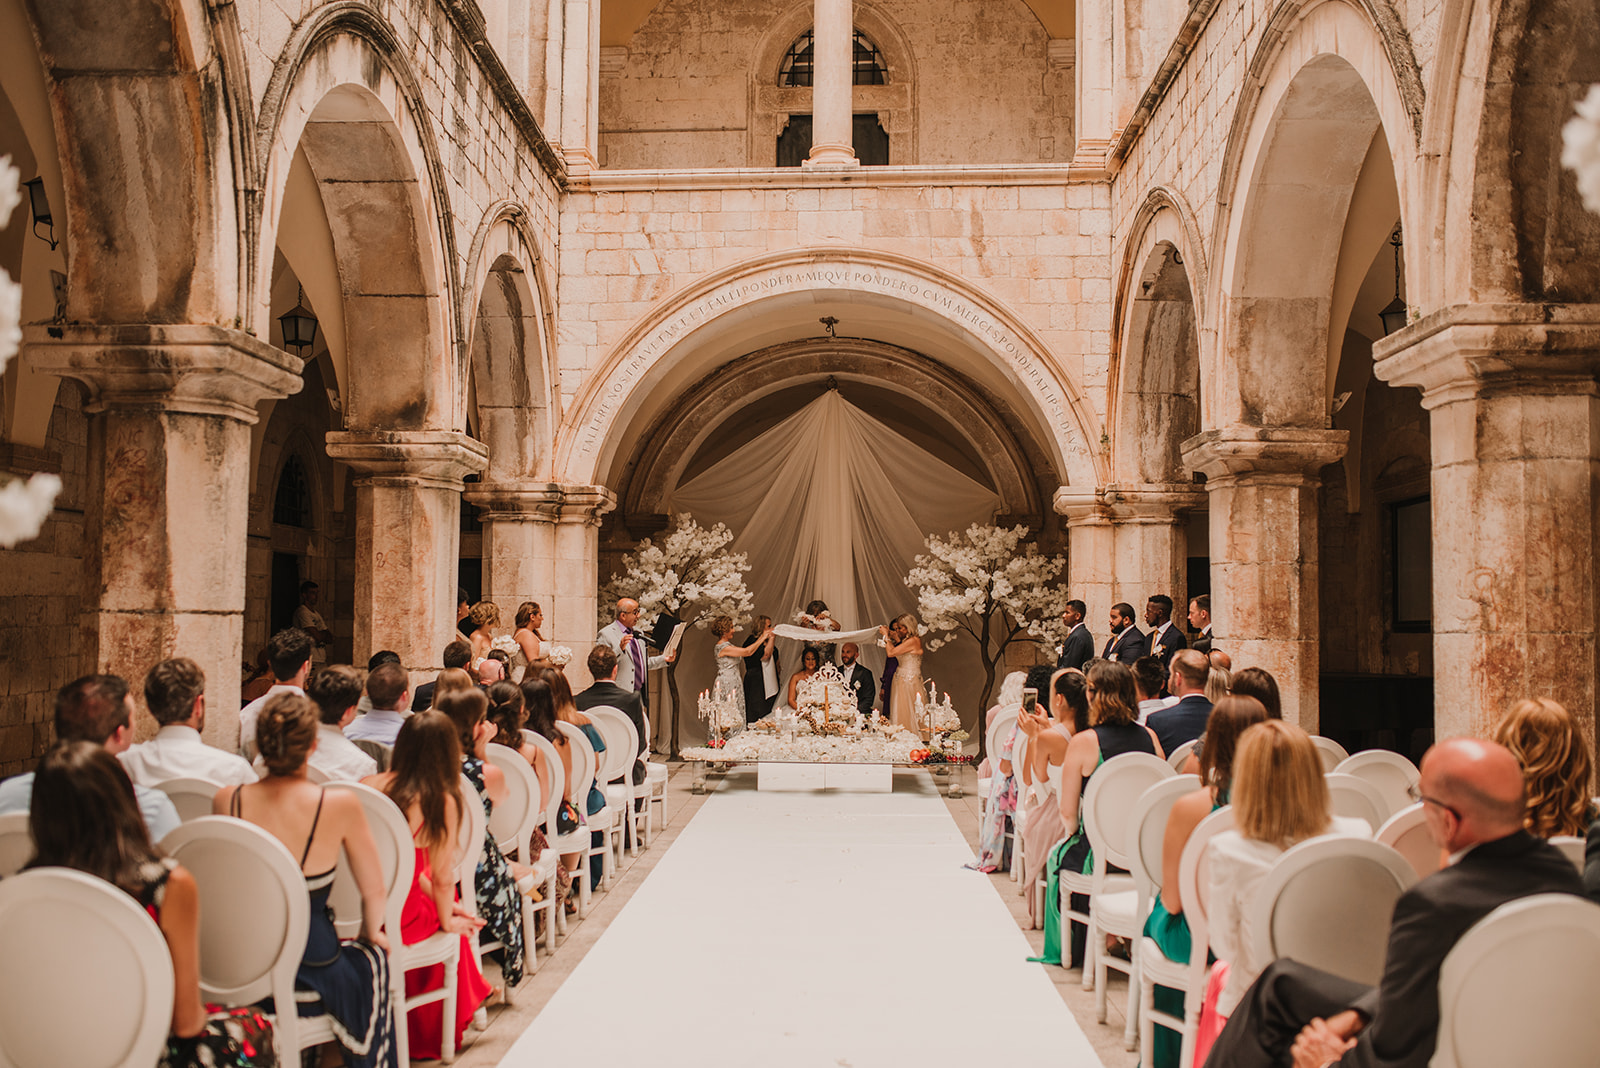 This image shows a popular Dubrovnik wedding venue: Sponza palace. This is a Persian wedding, the decoration is white and stunning, next to the couple are two fake white trees - very special.